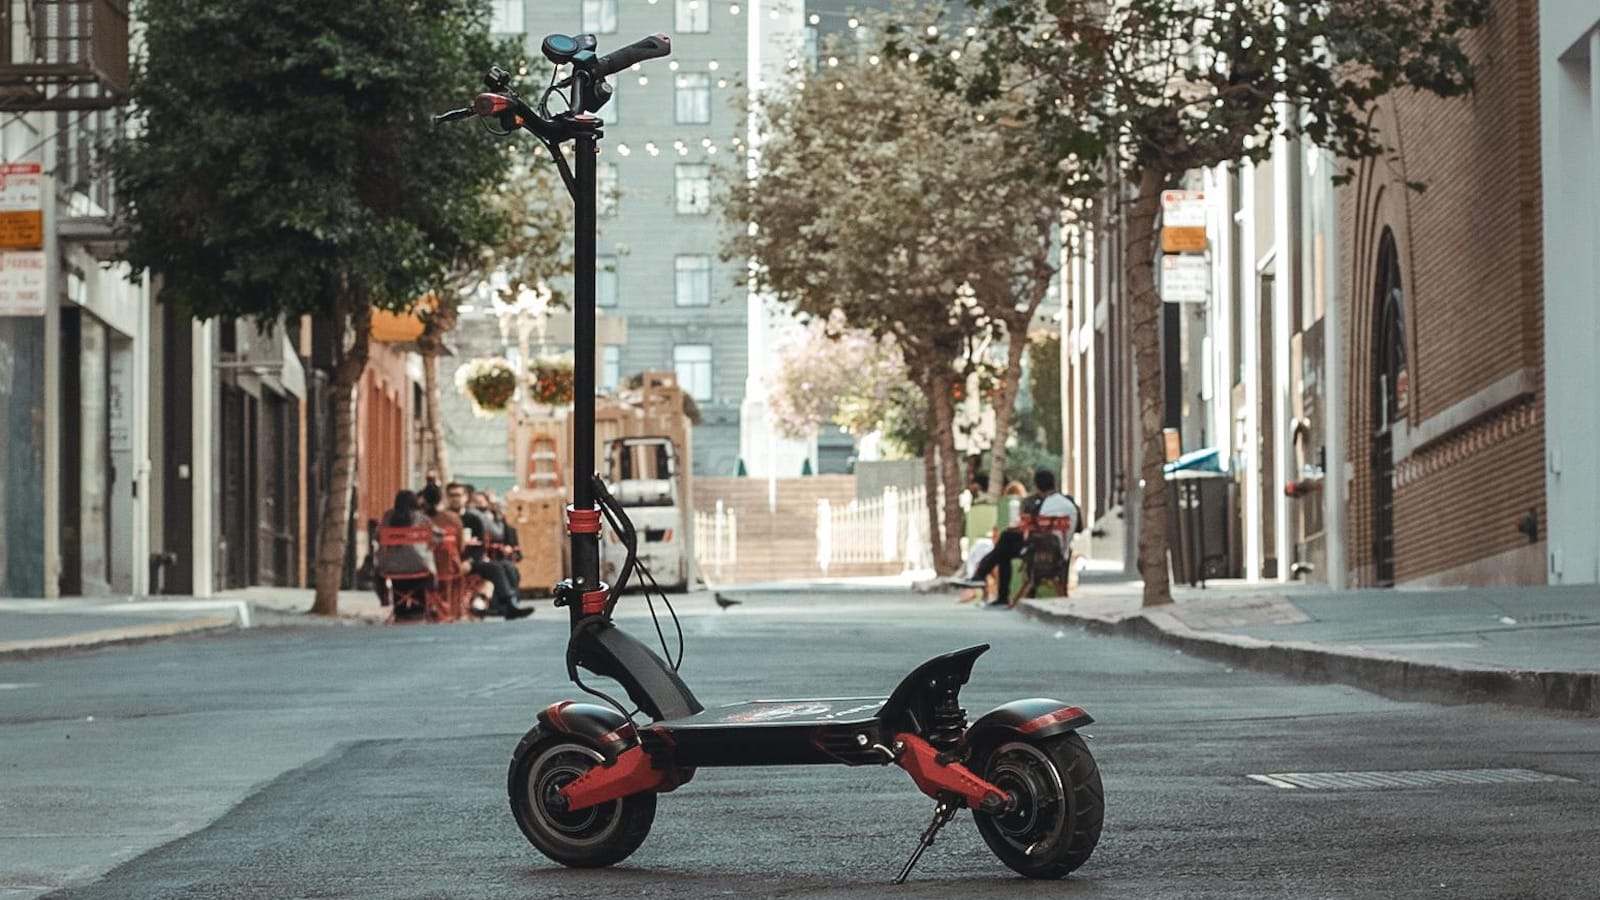 Varla Eagle One dual-motor electric scooter offers safety, speed, and style